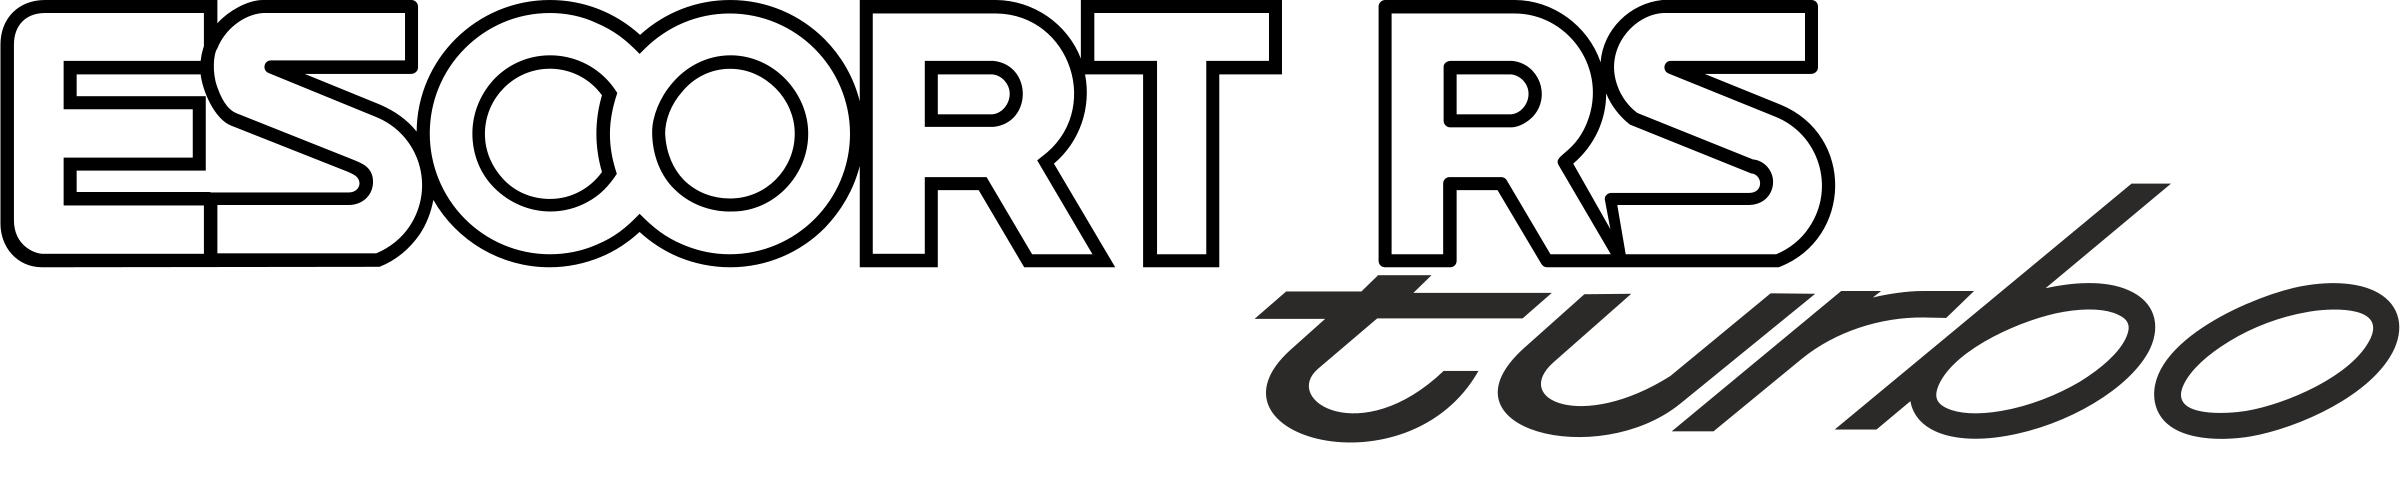 2400x489 Collection Of Free Turbo Vector Logo. Download On Ubisafe